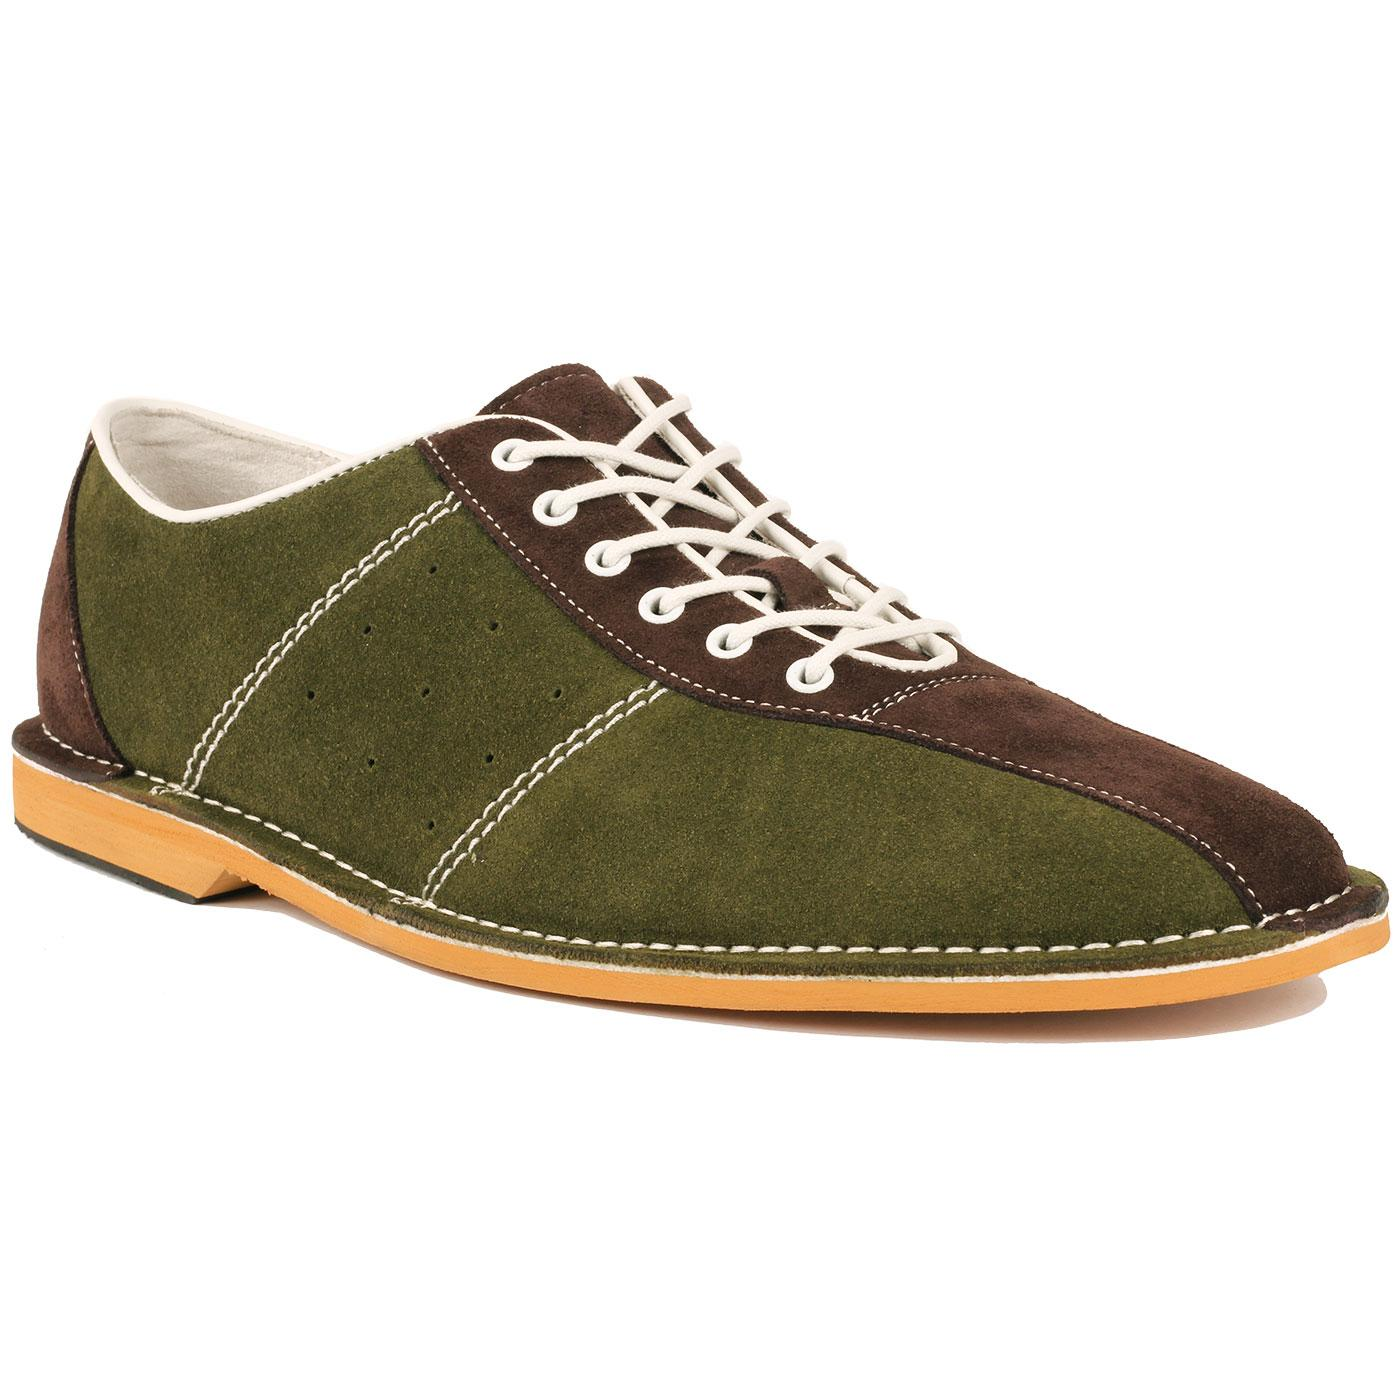 Madcap England Dude Mod Northern Soul Bowling Shoes in Dark Green/Brown